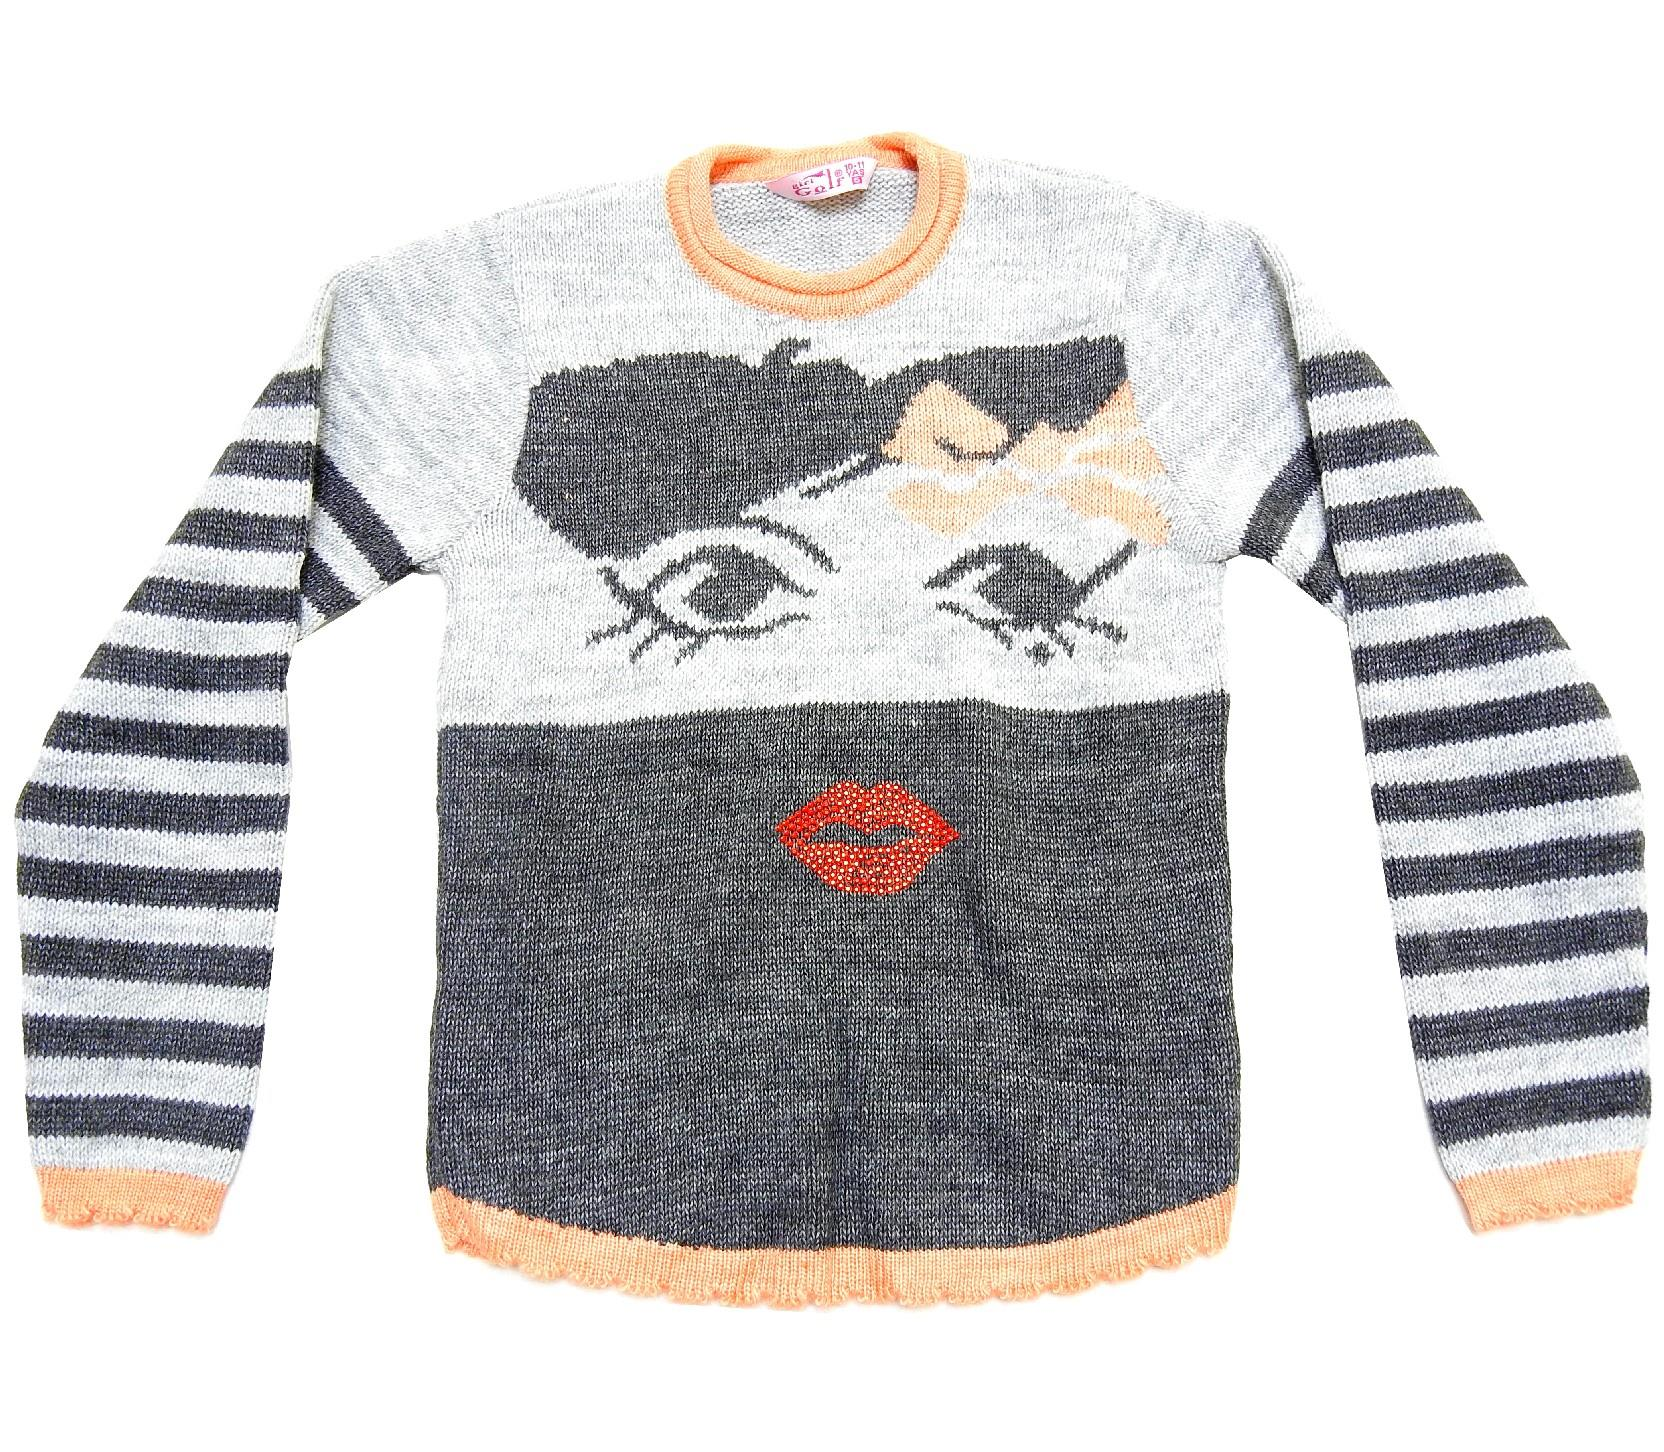 WHOLESALE GIRL PRINTED DESIGN SWEATER FOR GIRL (10-12-14 AGE)